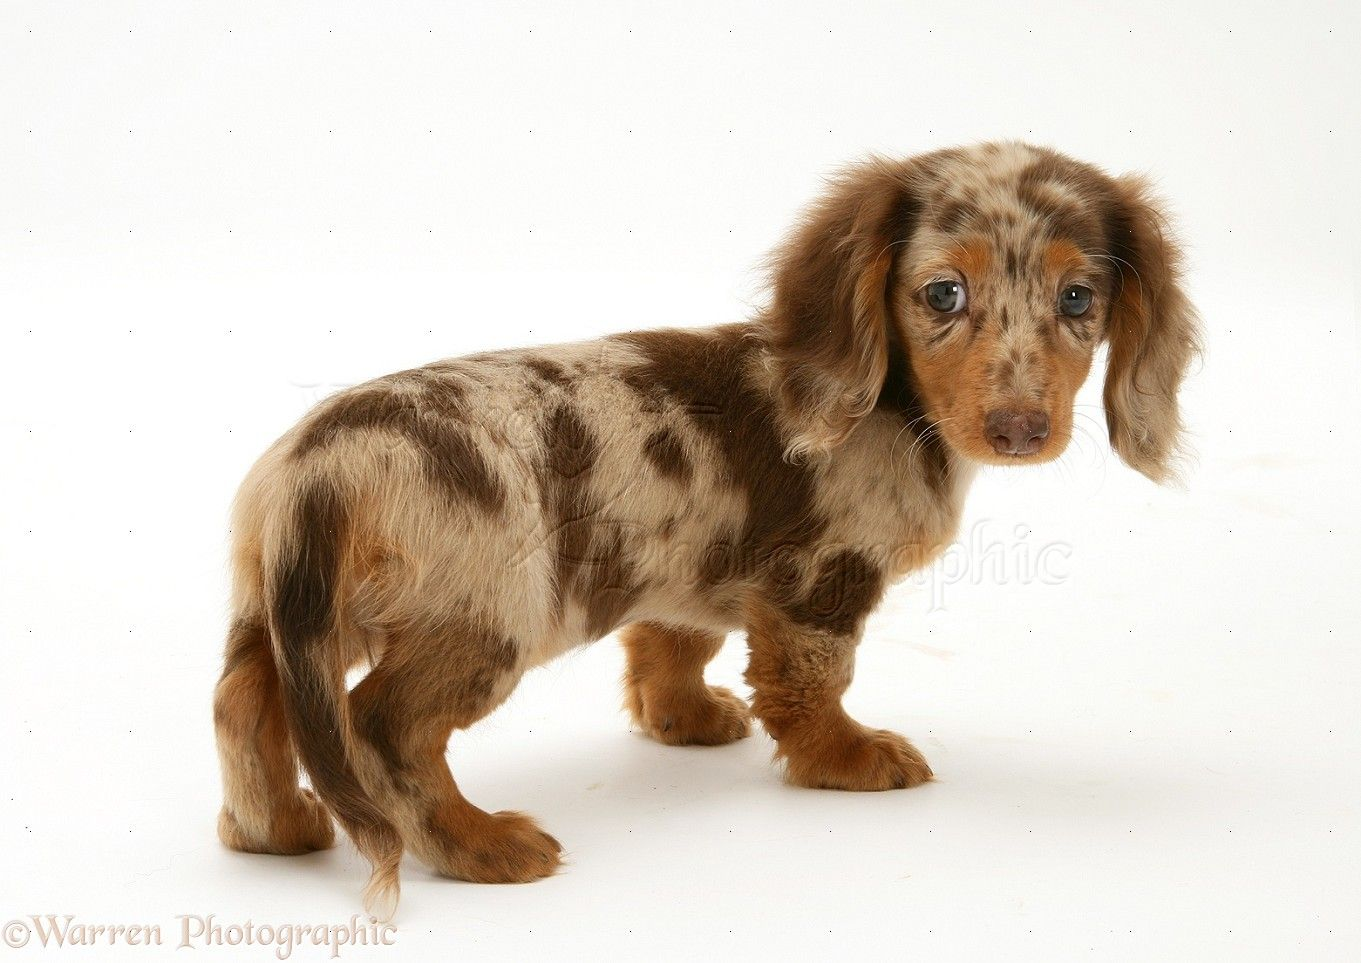 Dachshund puppies for sale purebred breeders llc, Ella